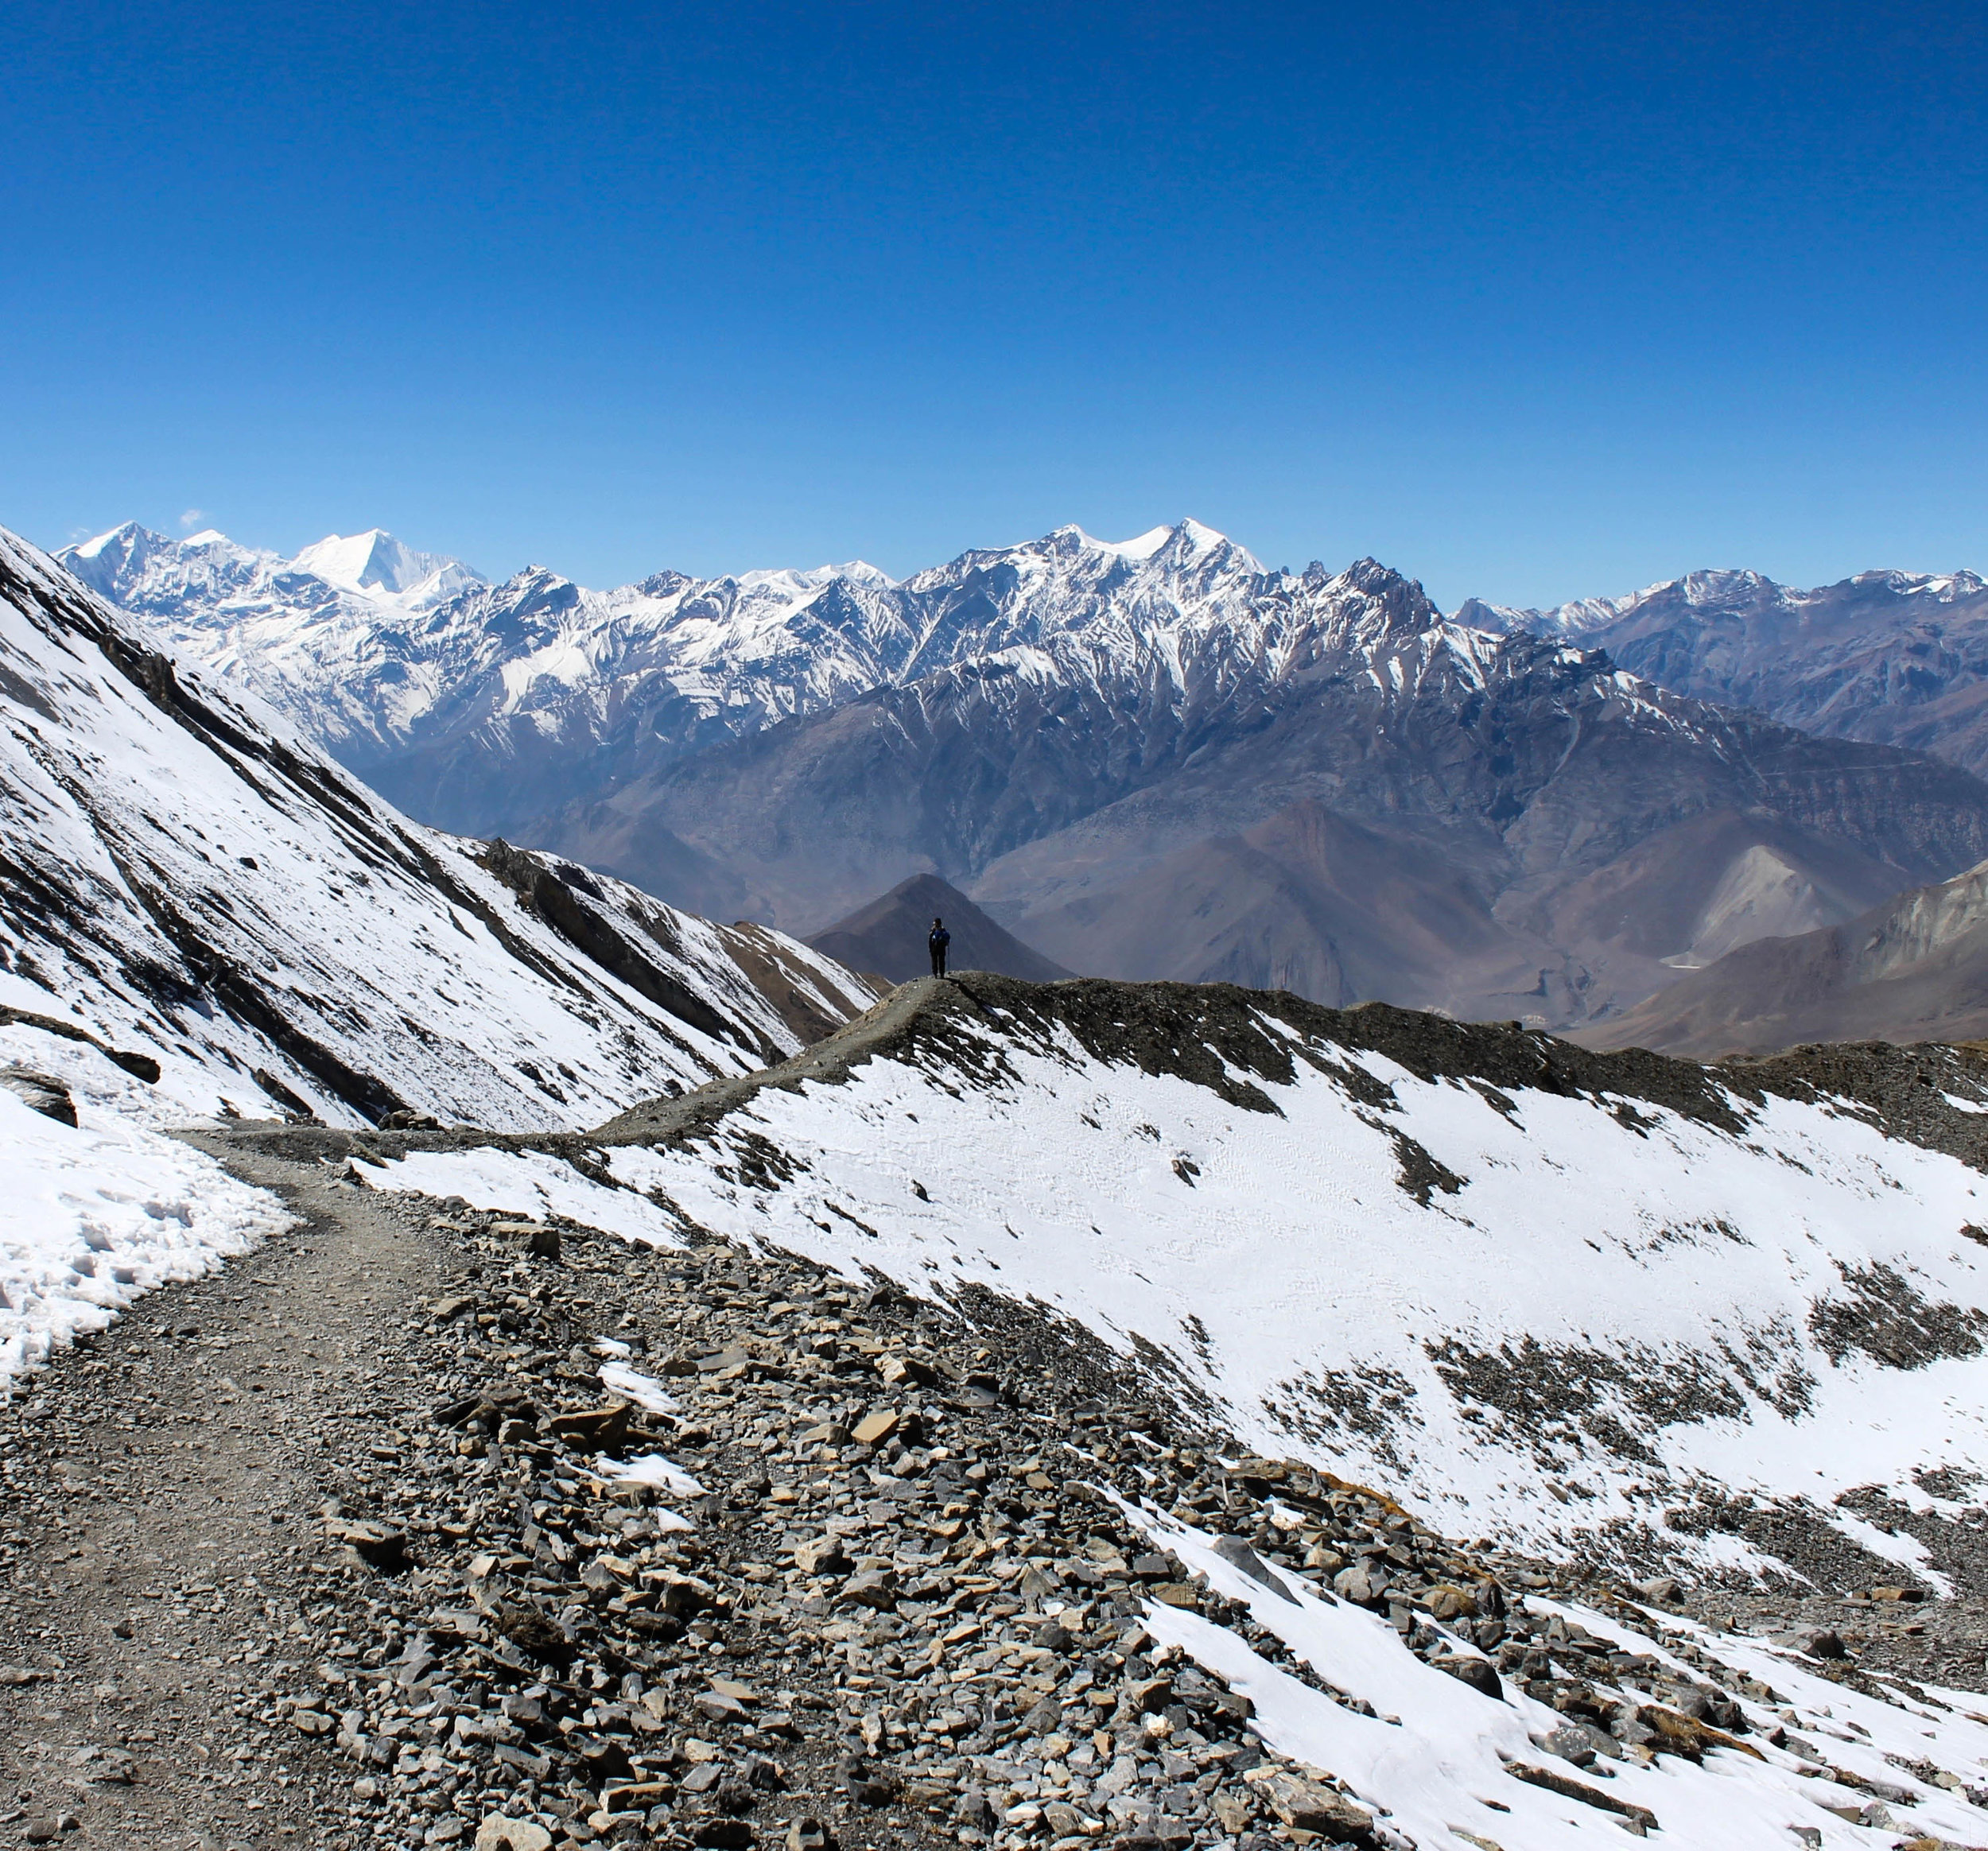 Myself enjoying the view after a long day of crossing Thorong La pass (5,400 meters).